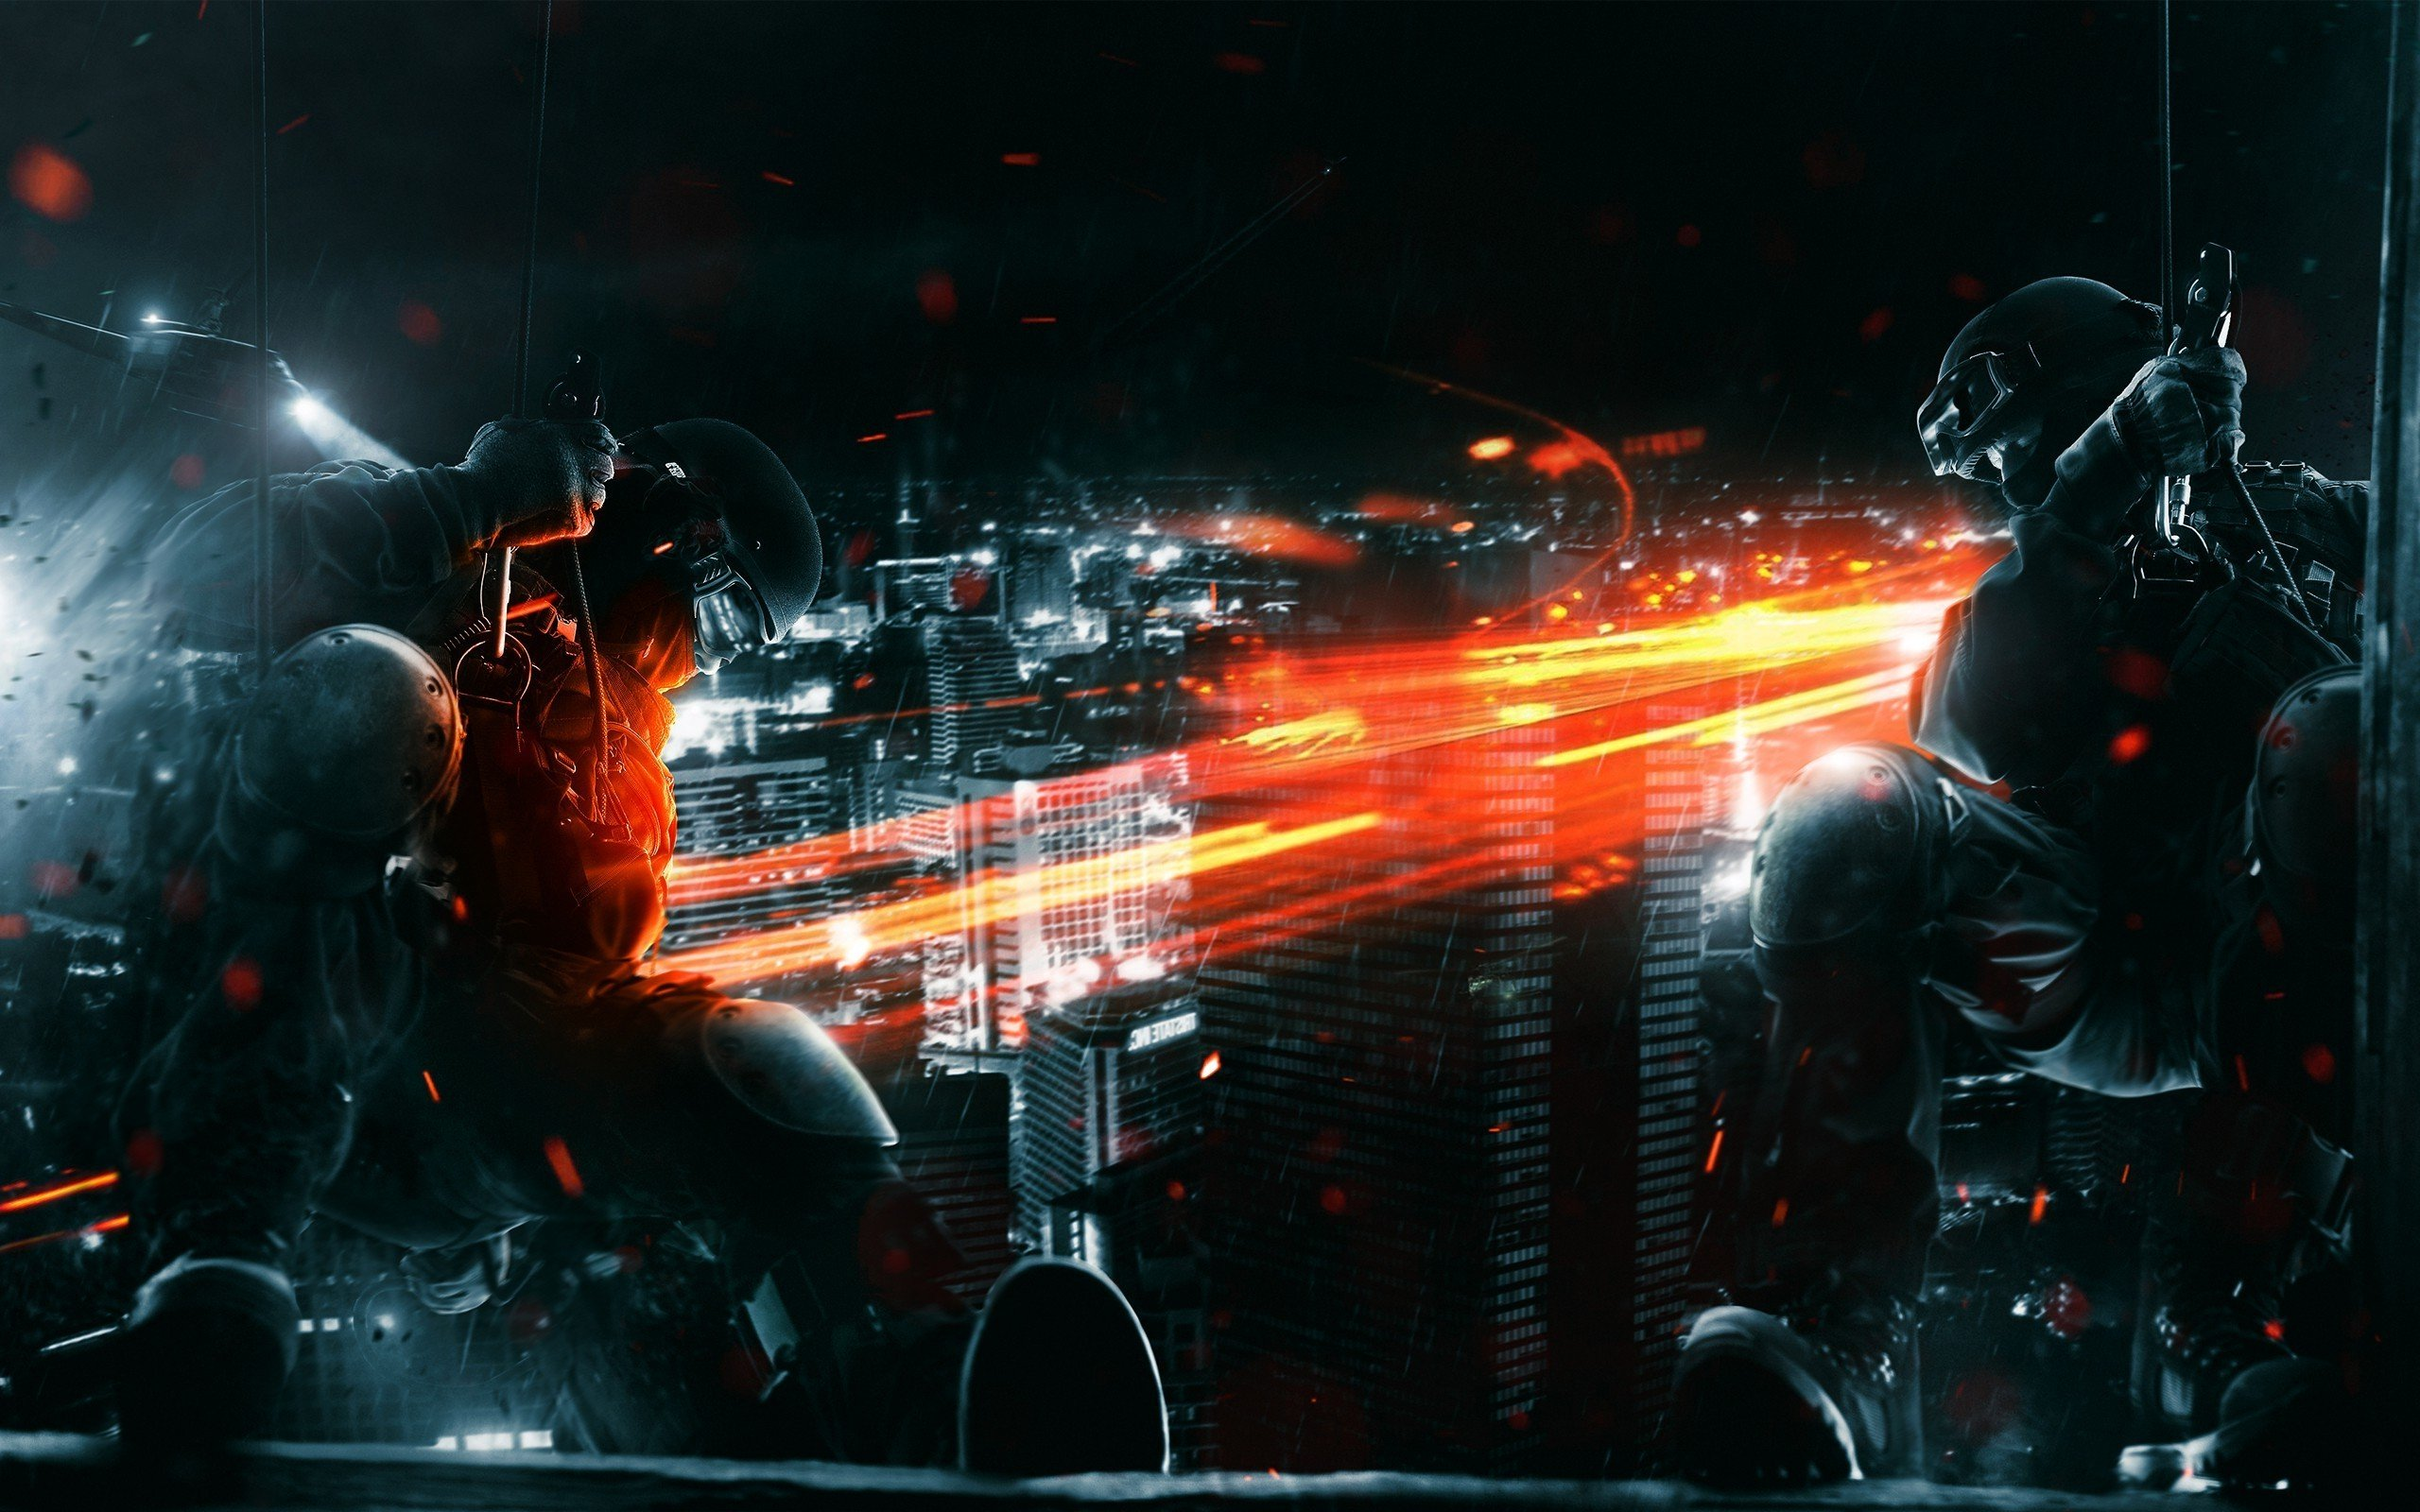 Battlefield 4 Wallpaper 2560x1440 Wallpaper battlefield 3 2560x1600